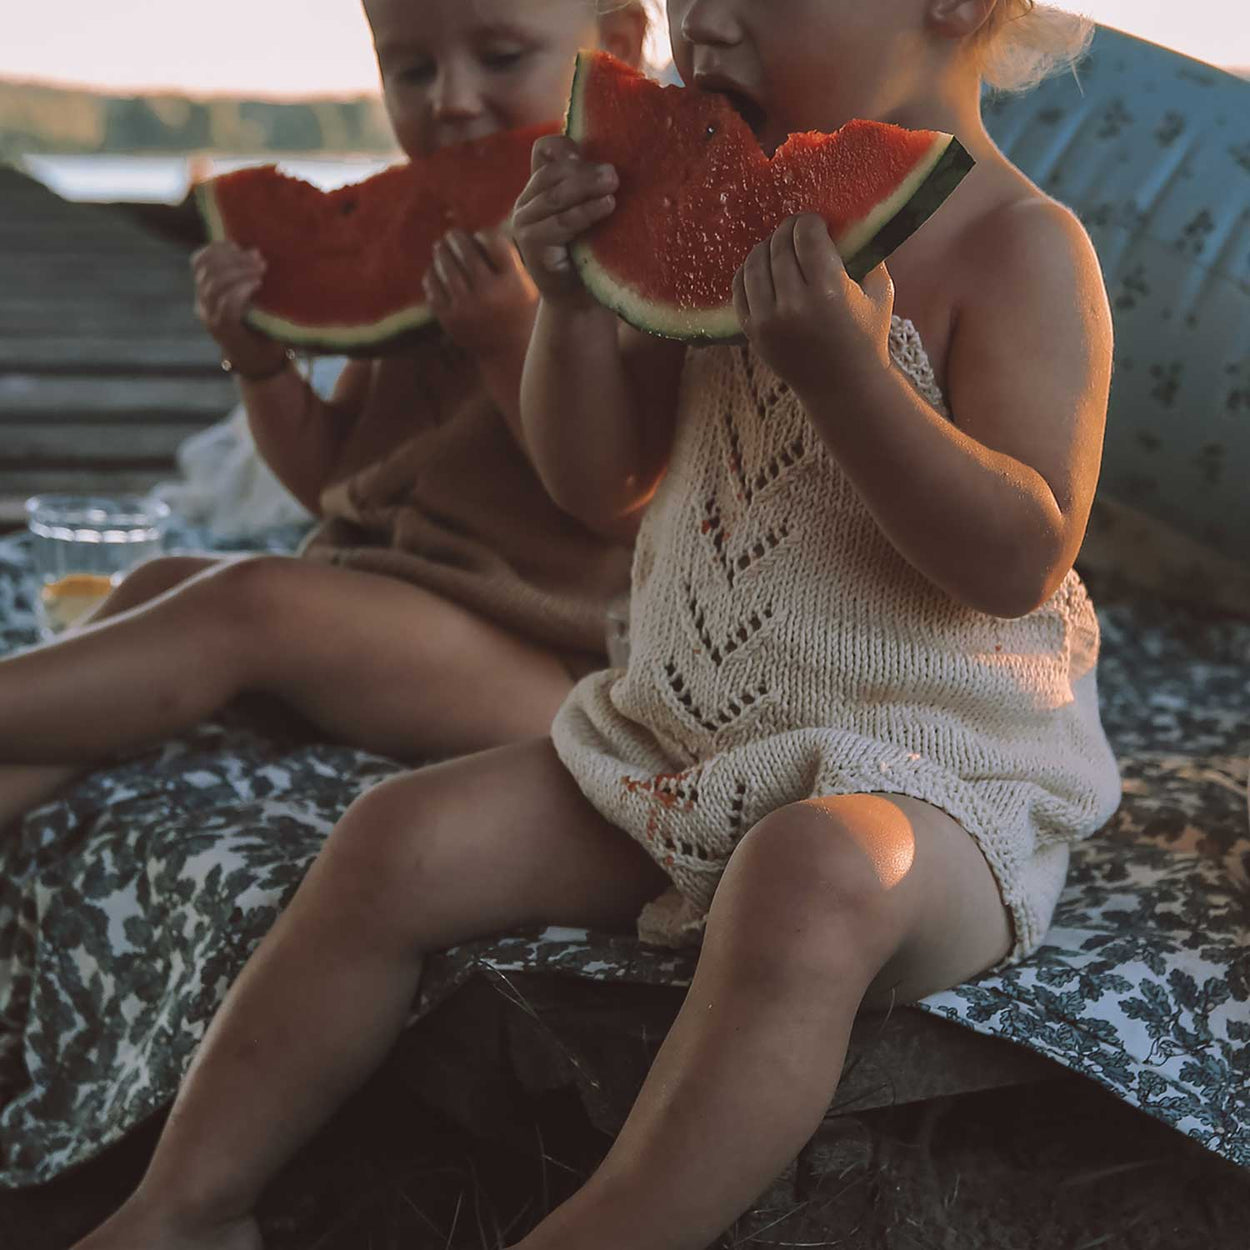 Perfect picnic blanket - two kids enjoying a slice of watermelon on a Garbo&Friends premium children's blanket in Woodland pattern